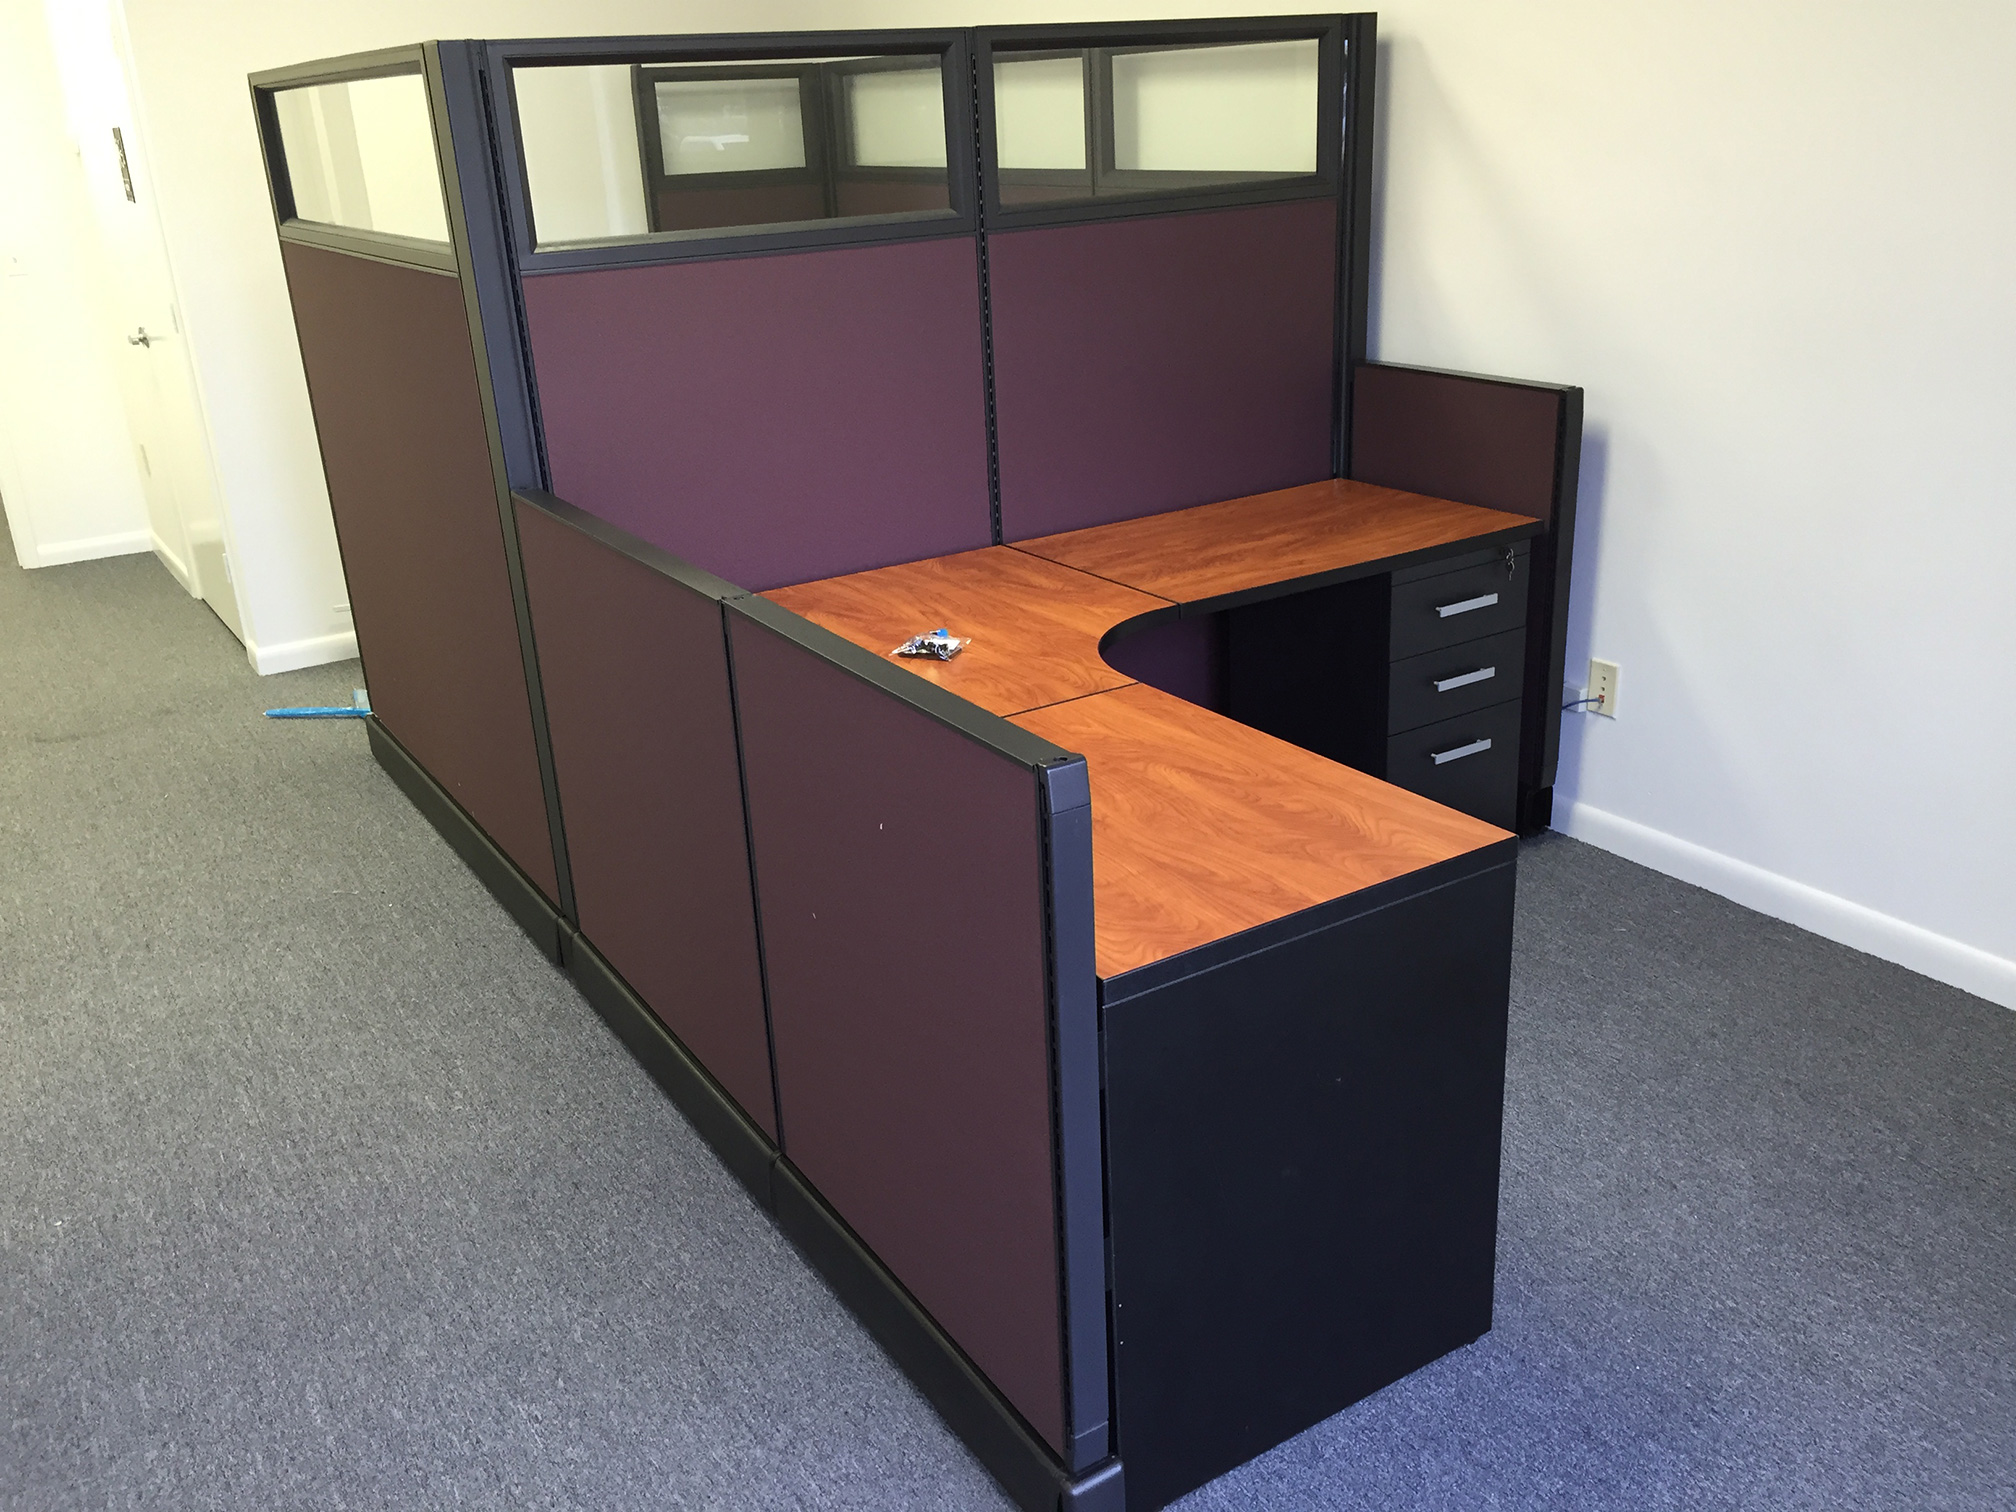 used-office-desks-manasota-office-supplies-llc.jpg